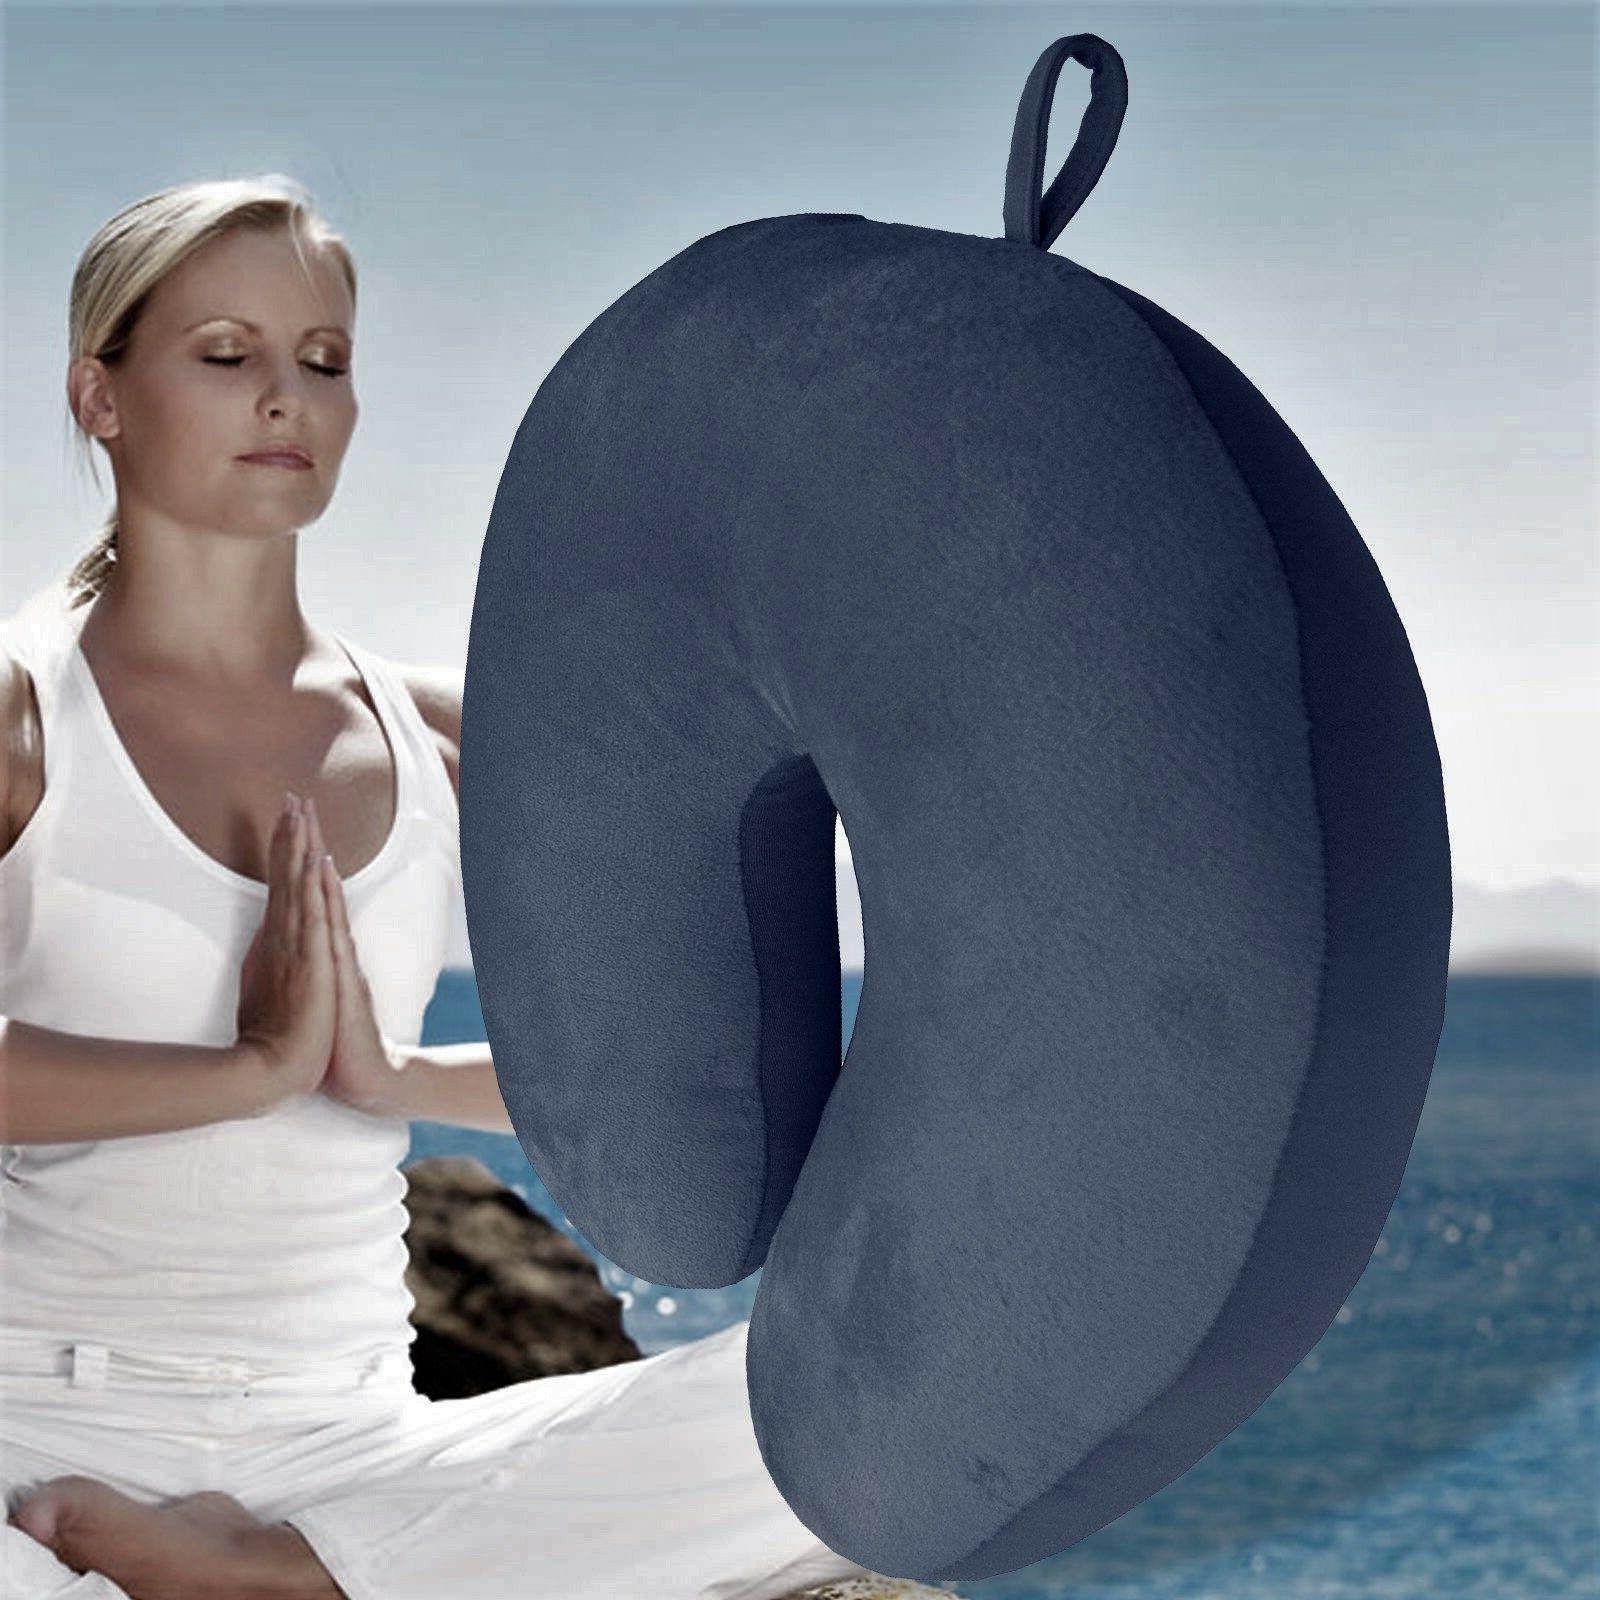 Navy Blue U Shaped Travel Pillow Neck Support Head Rest Airp